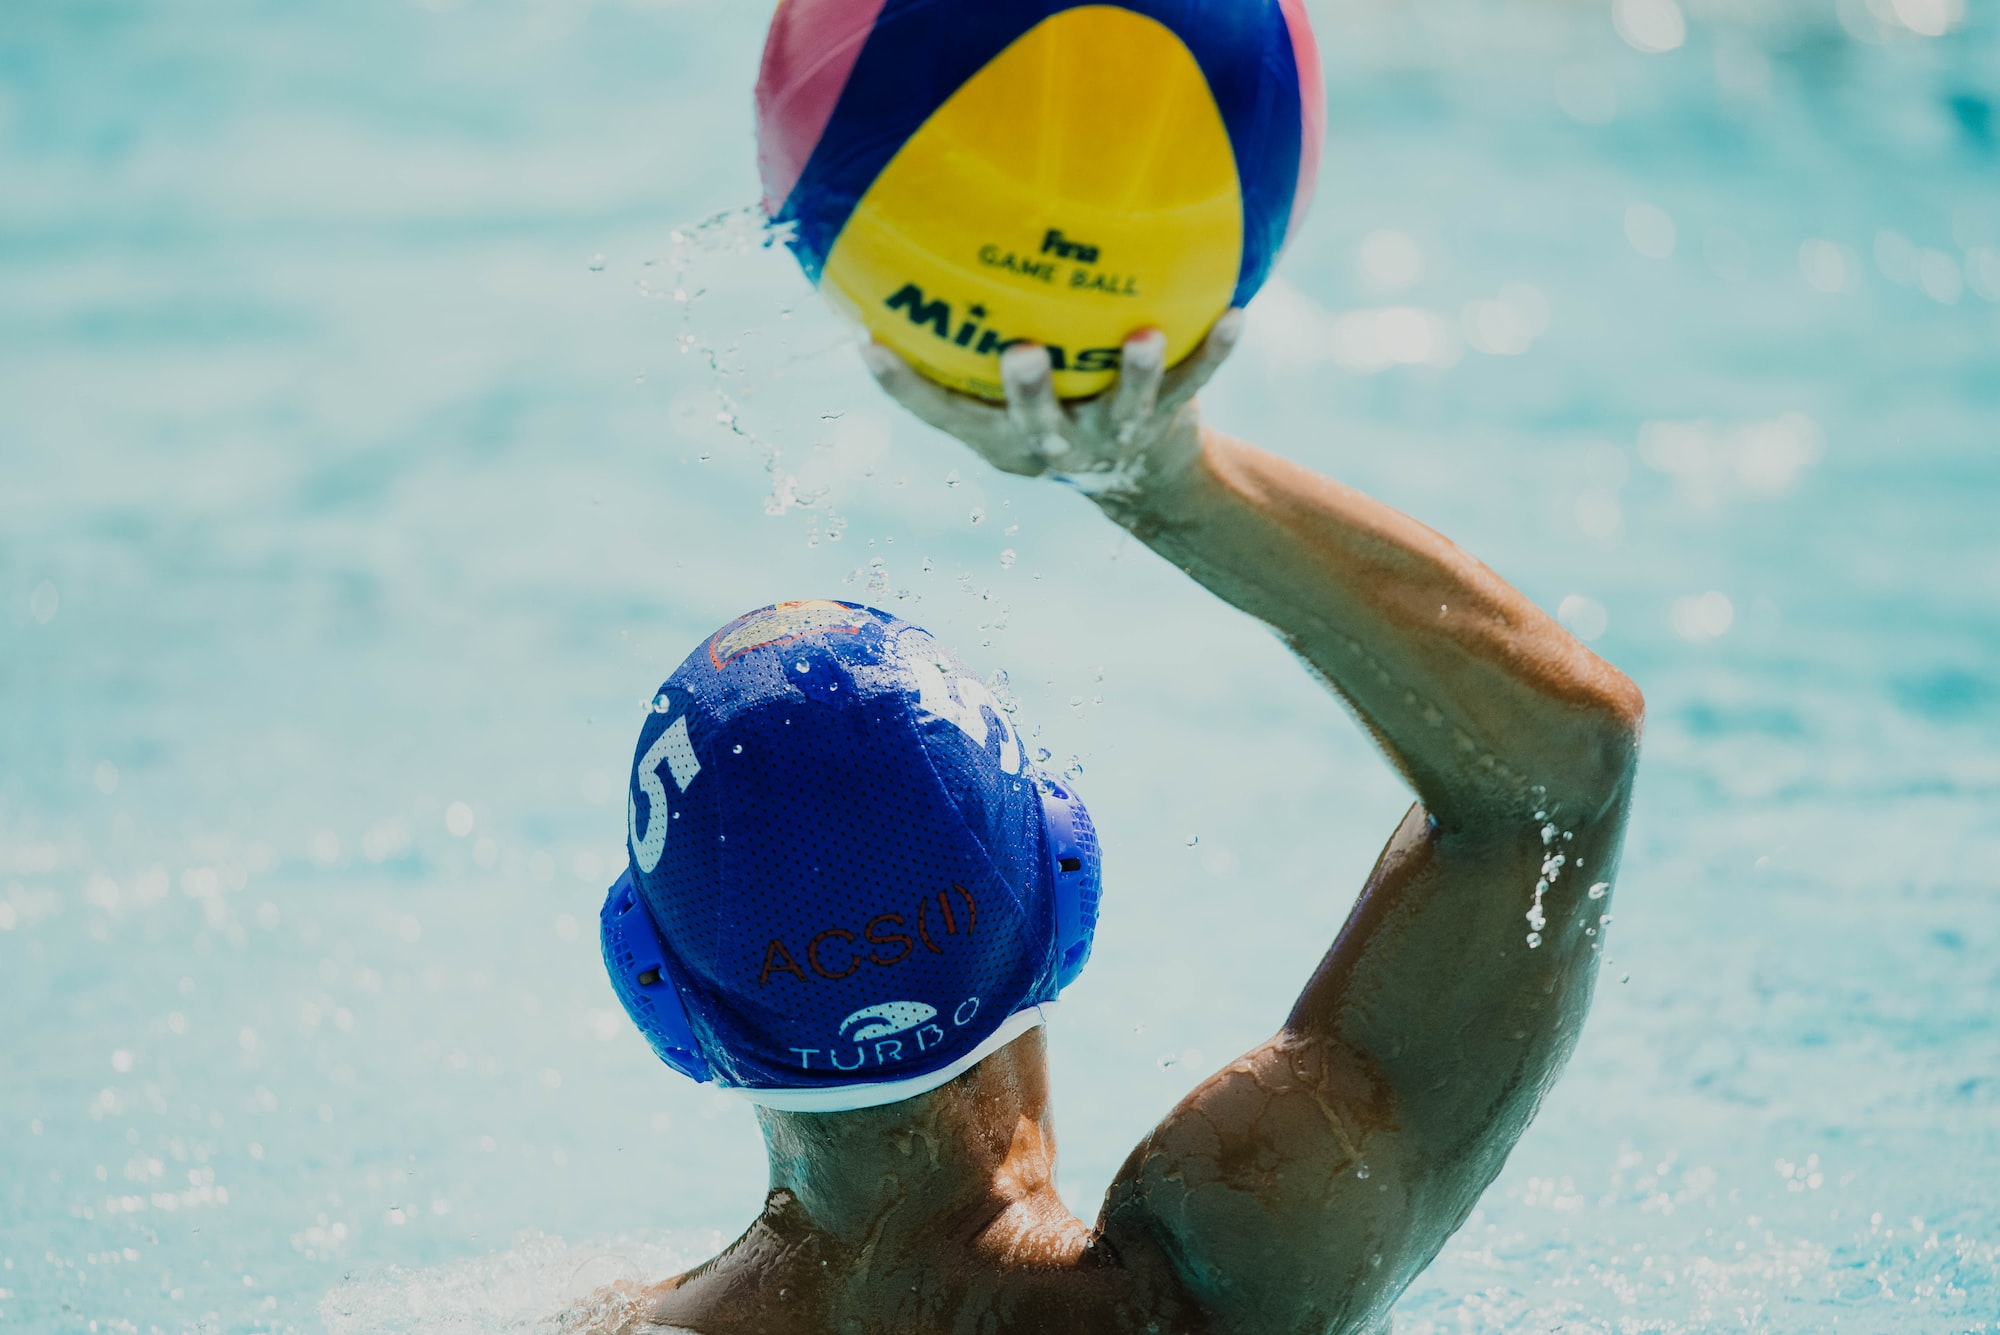 Play Hard: Erotic gay fiction about the guys on the water polo team